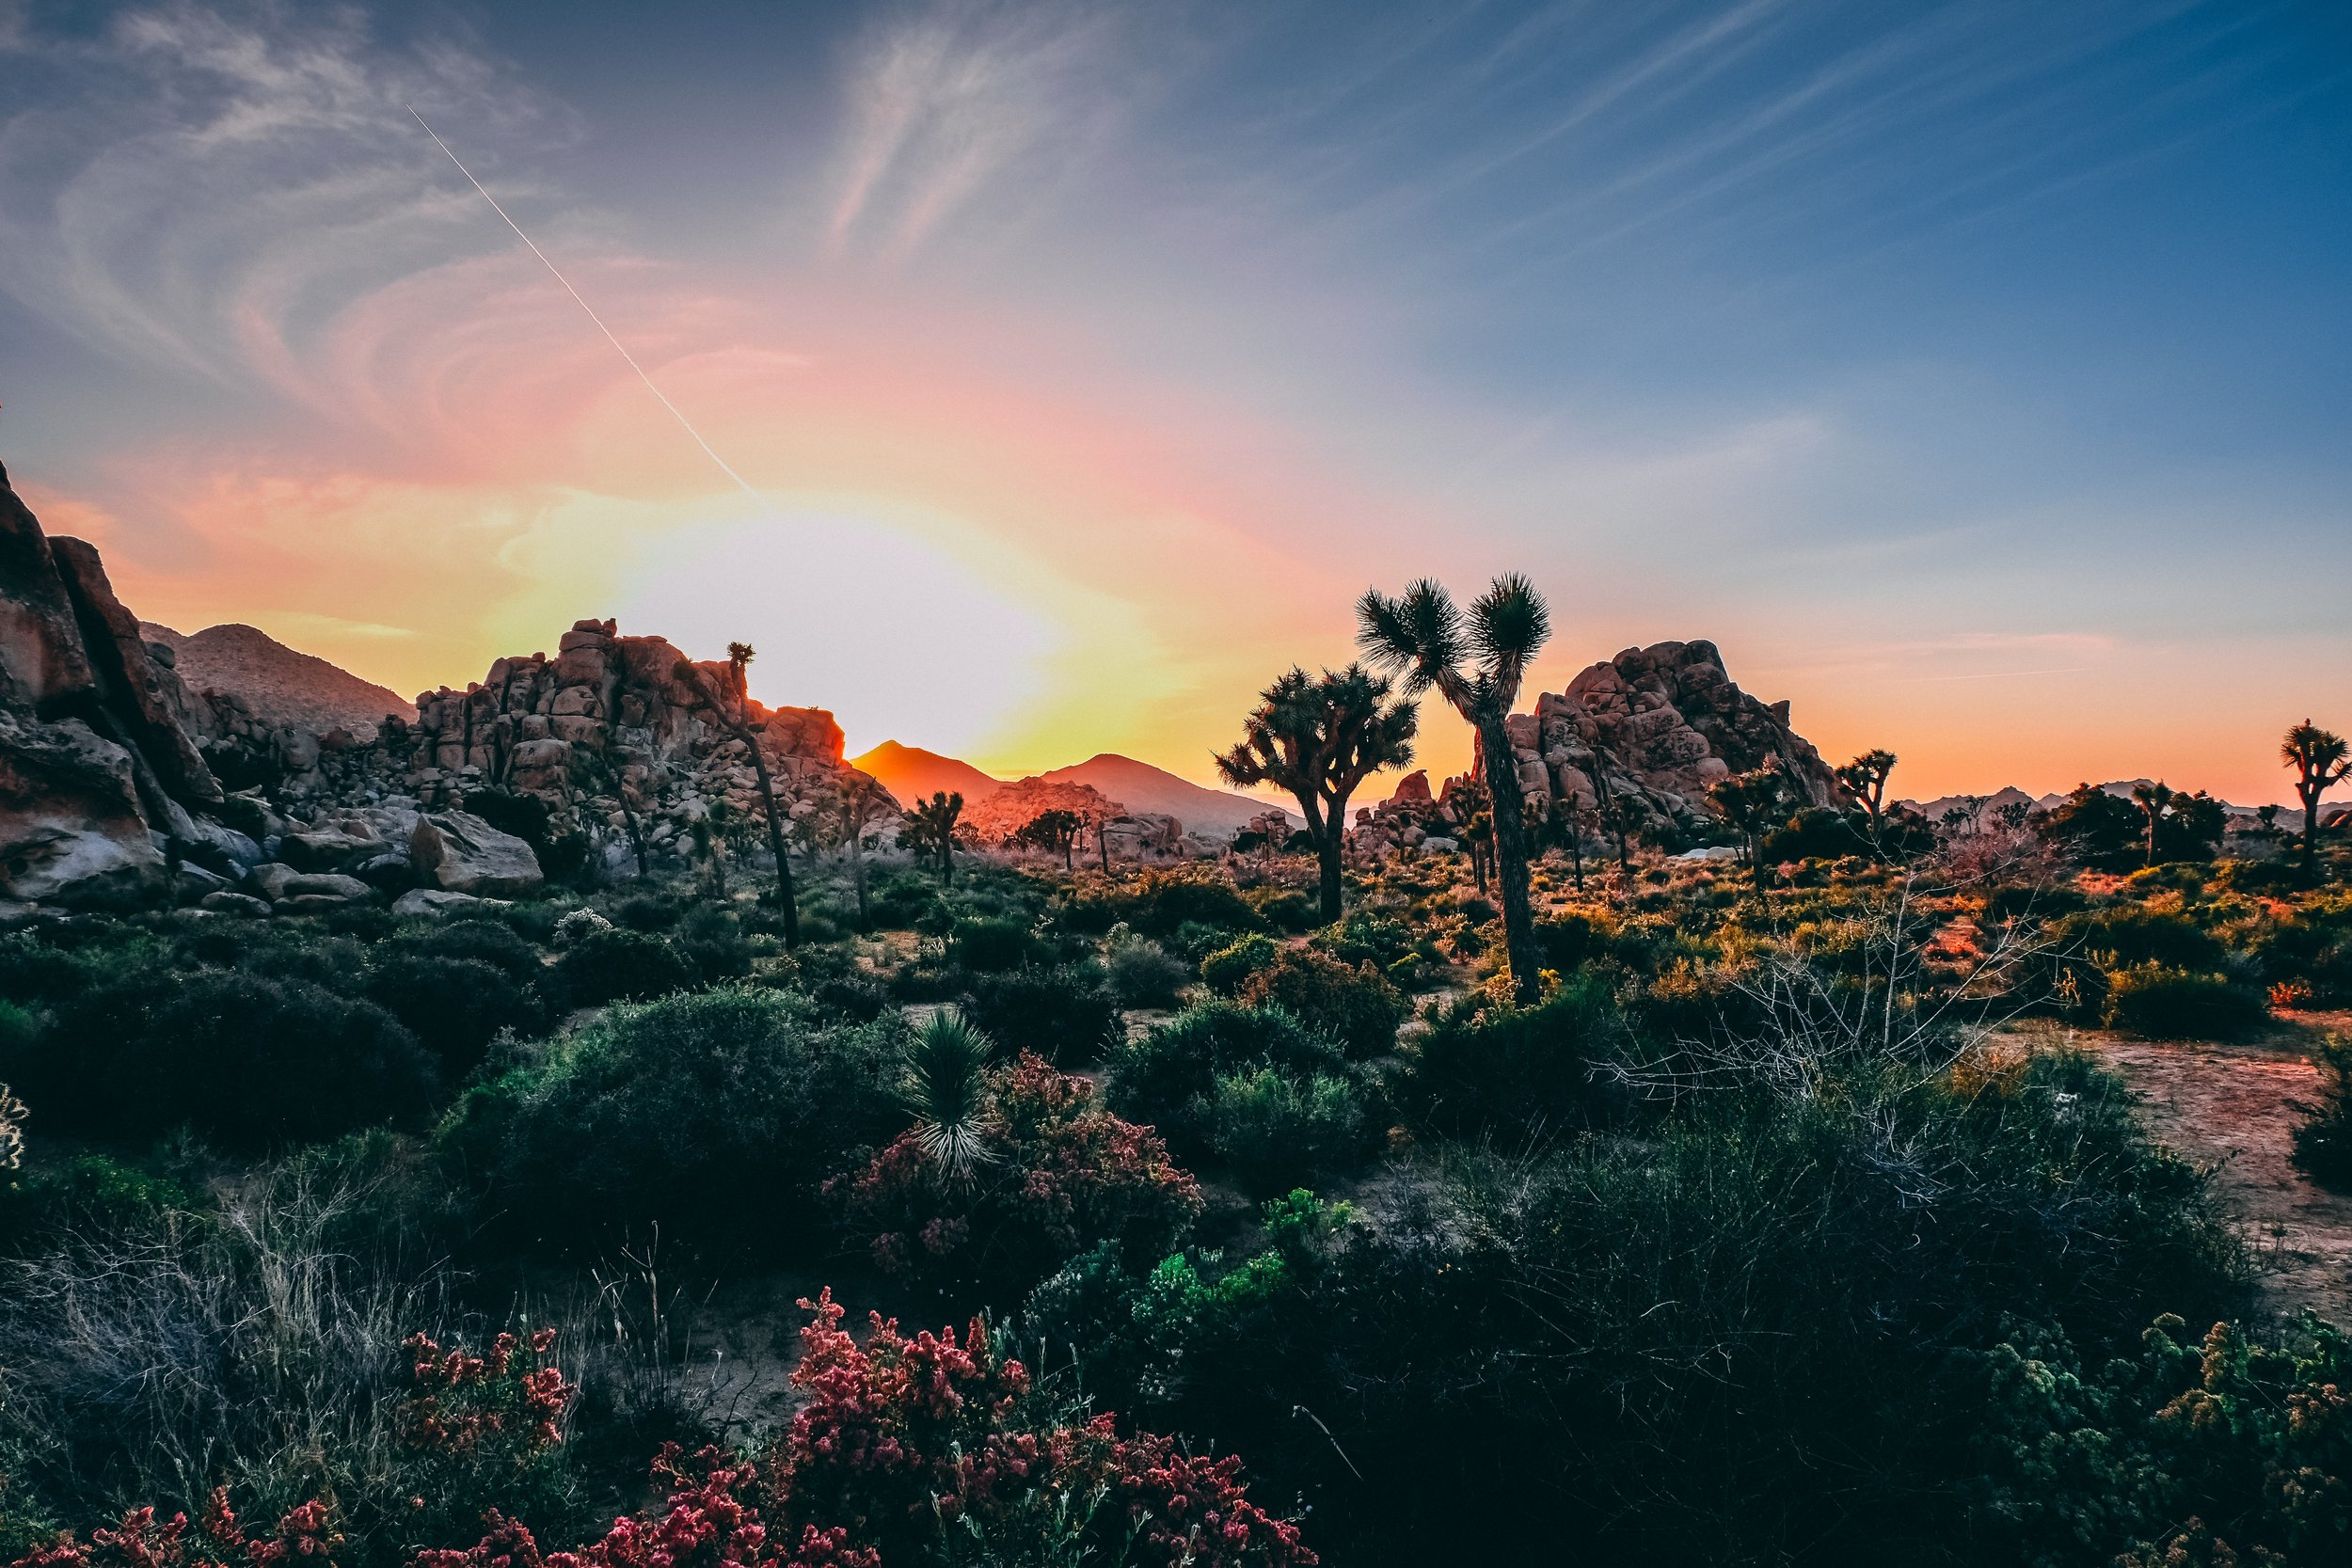 Joshua Tree Guided Hiking Tour - Customize your hike to find the hidden gems!